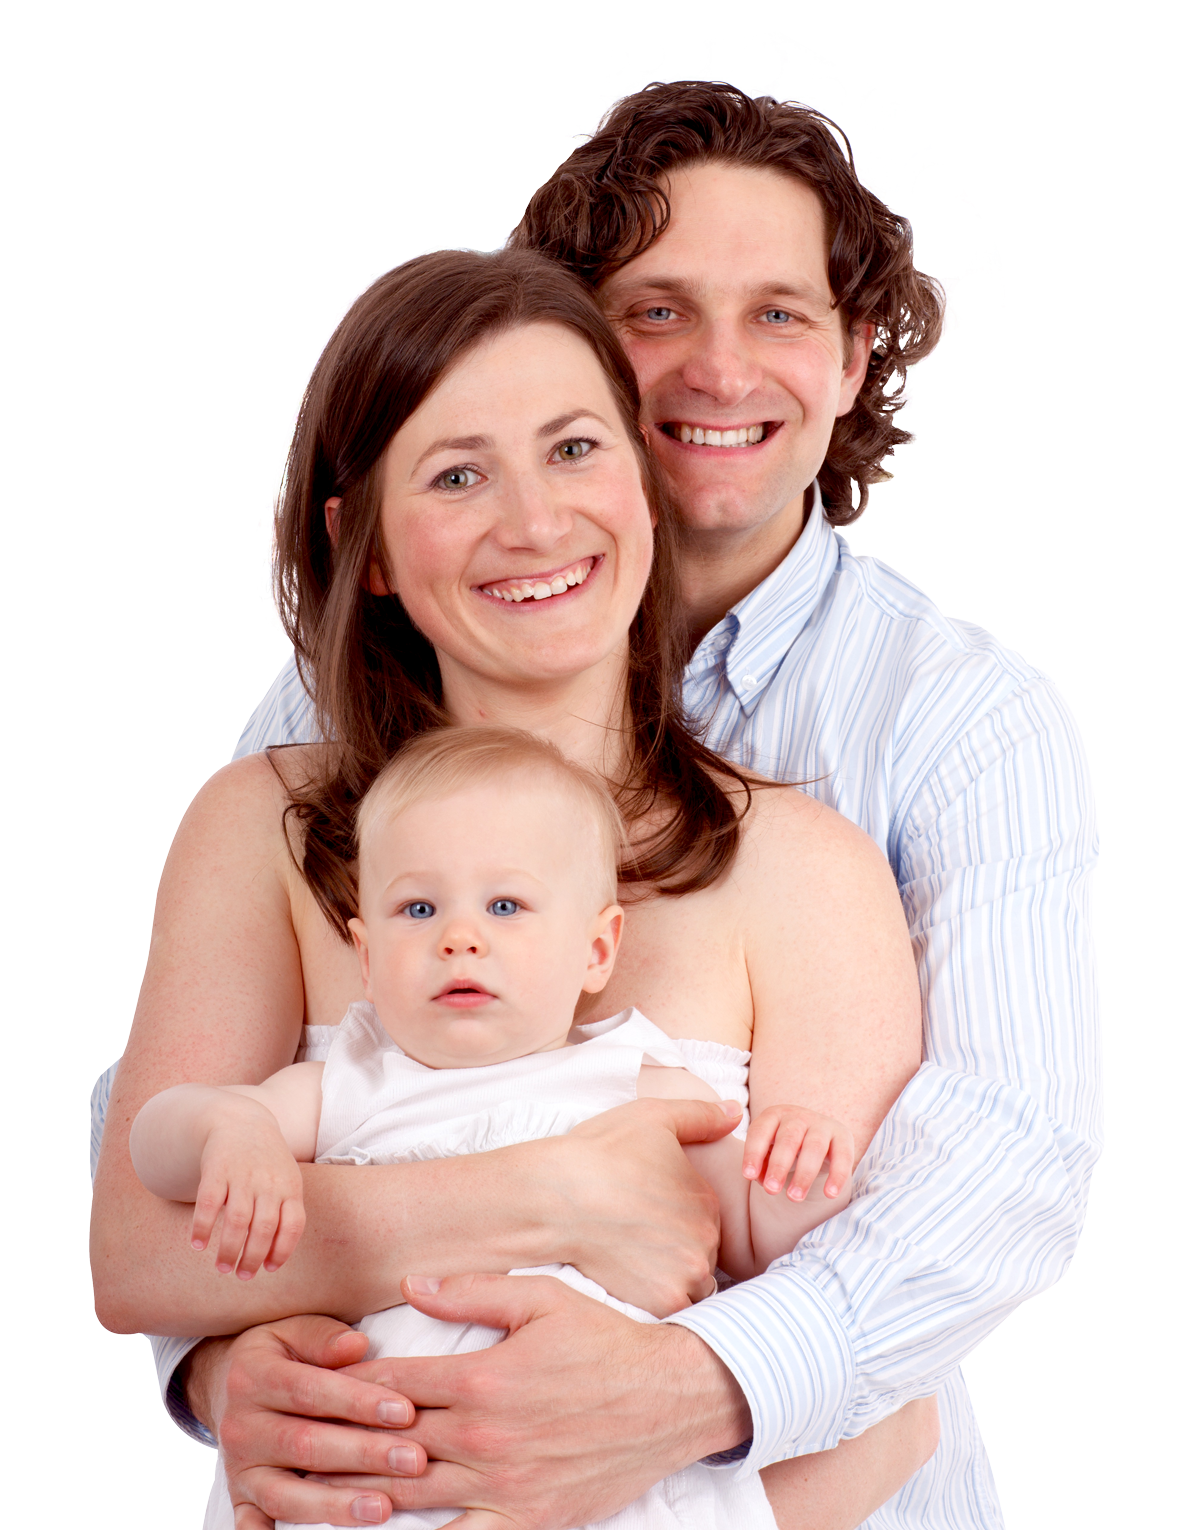 Couple with baby PNG Image